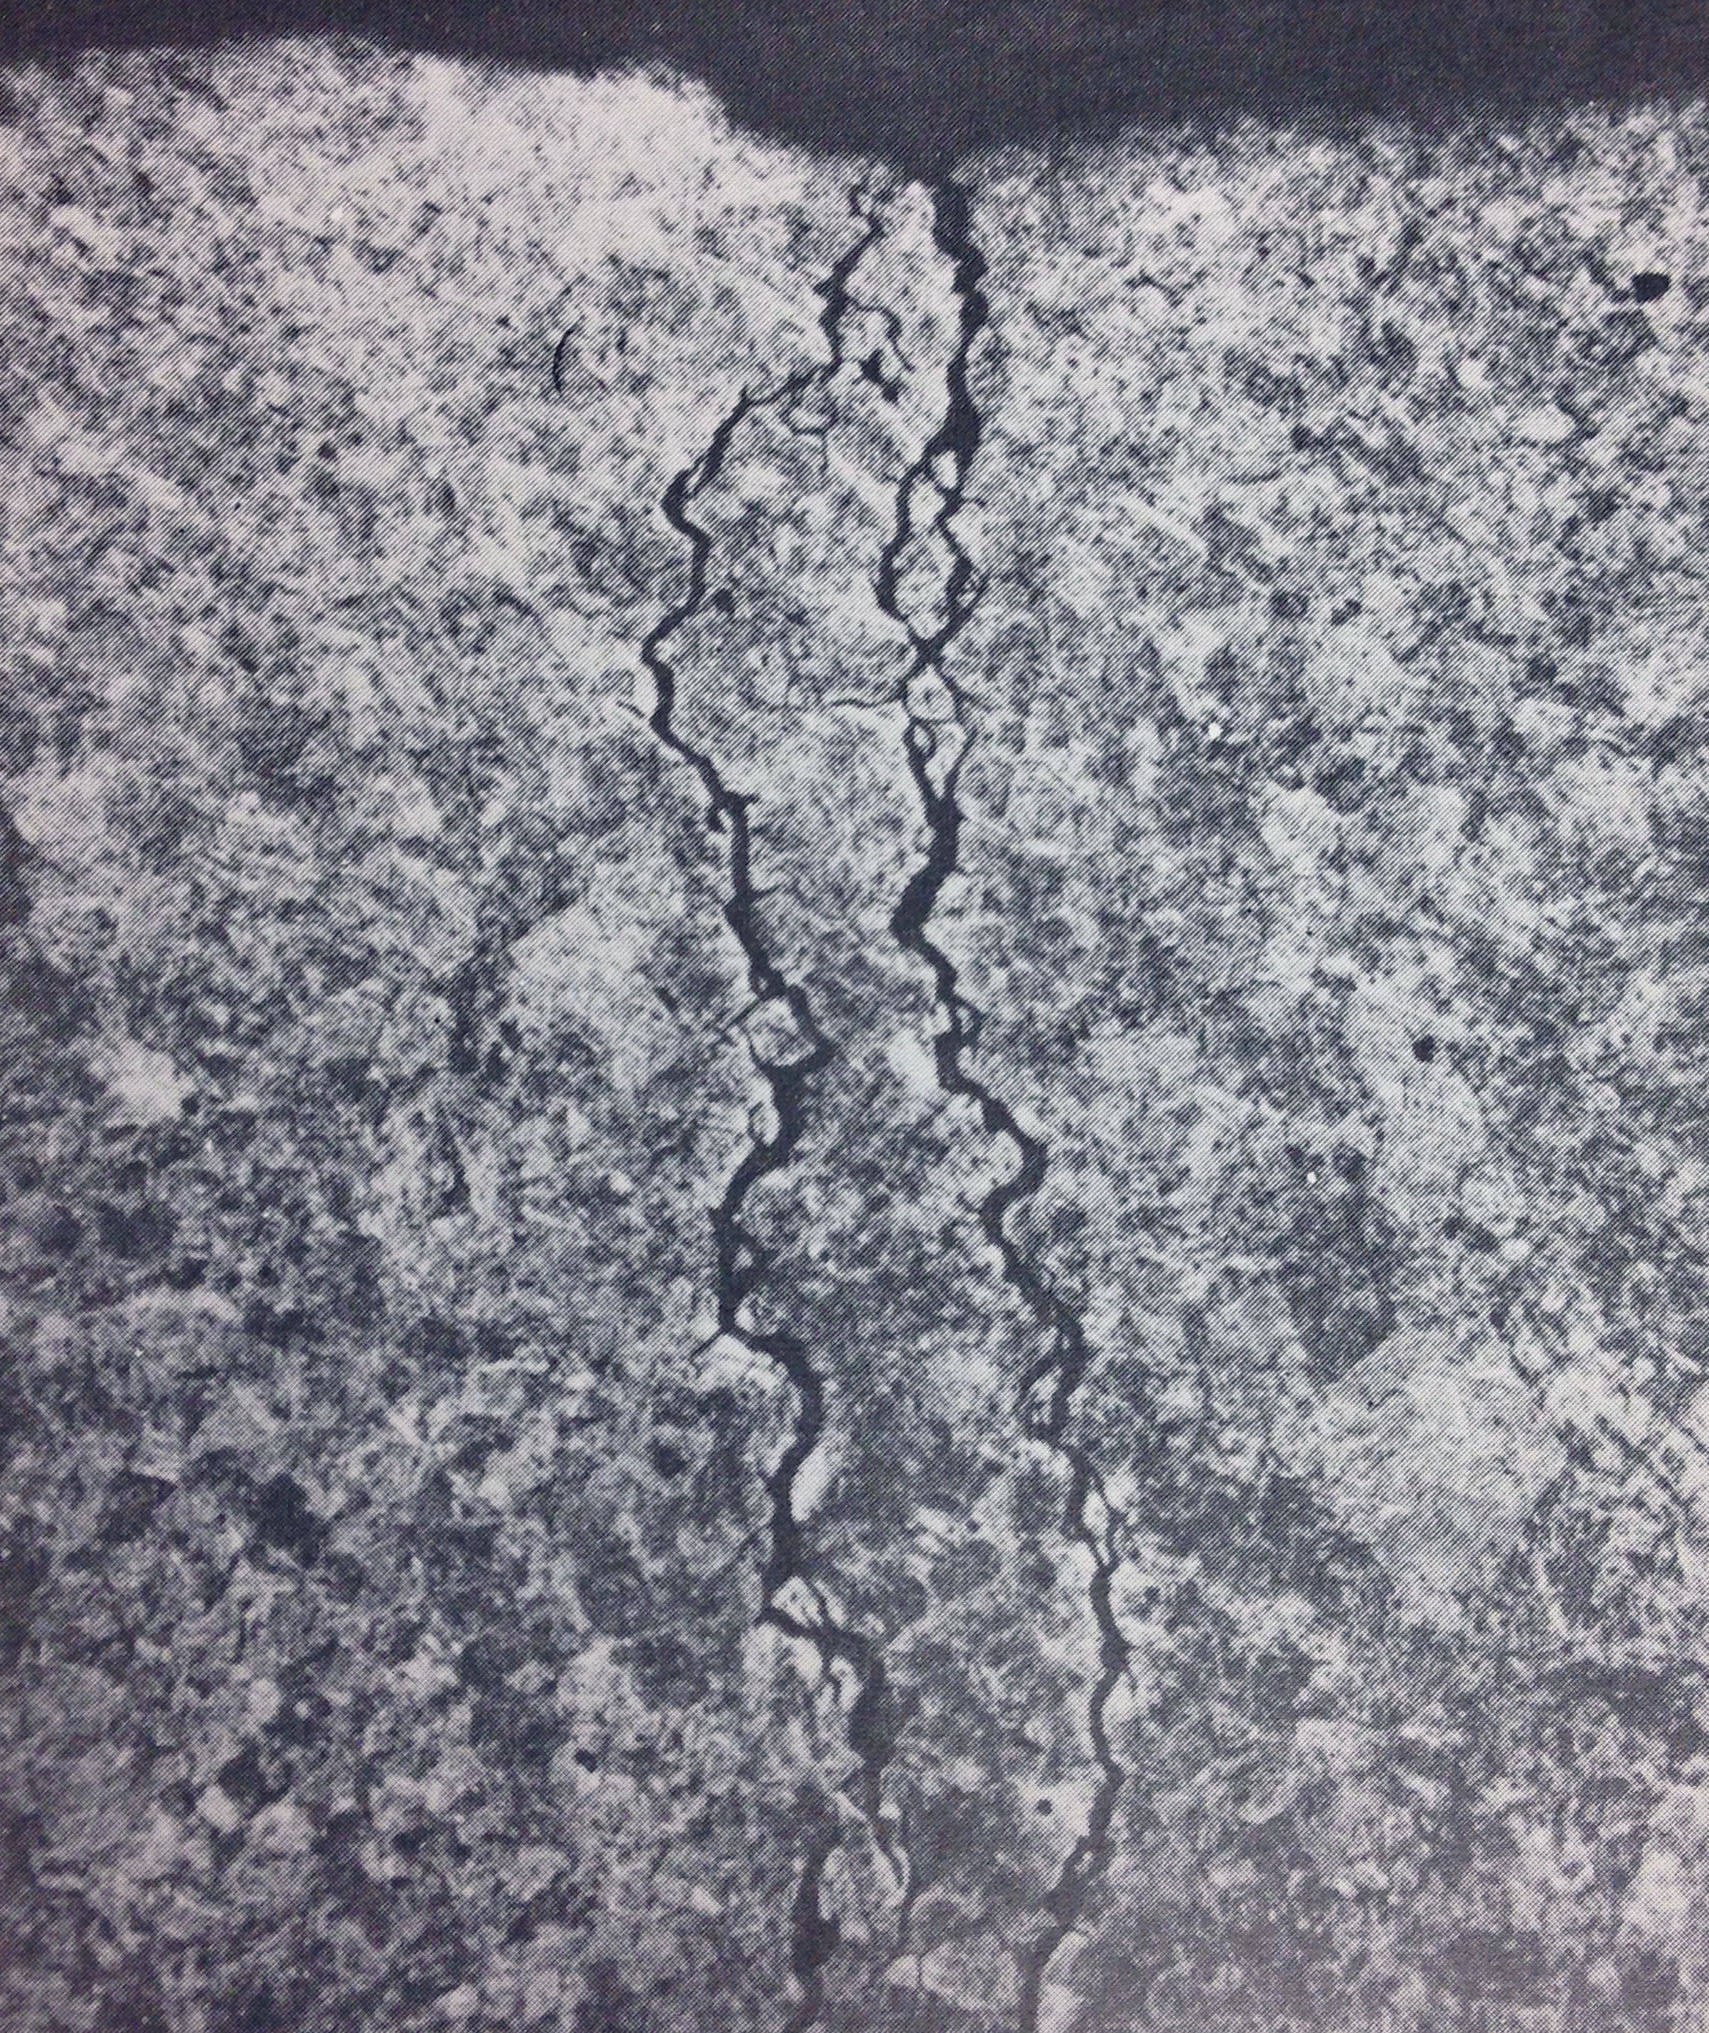 How To Recognize A Quench Crack Speaking Of Precision Blog